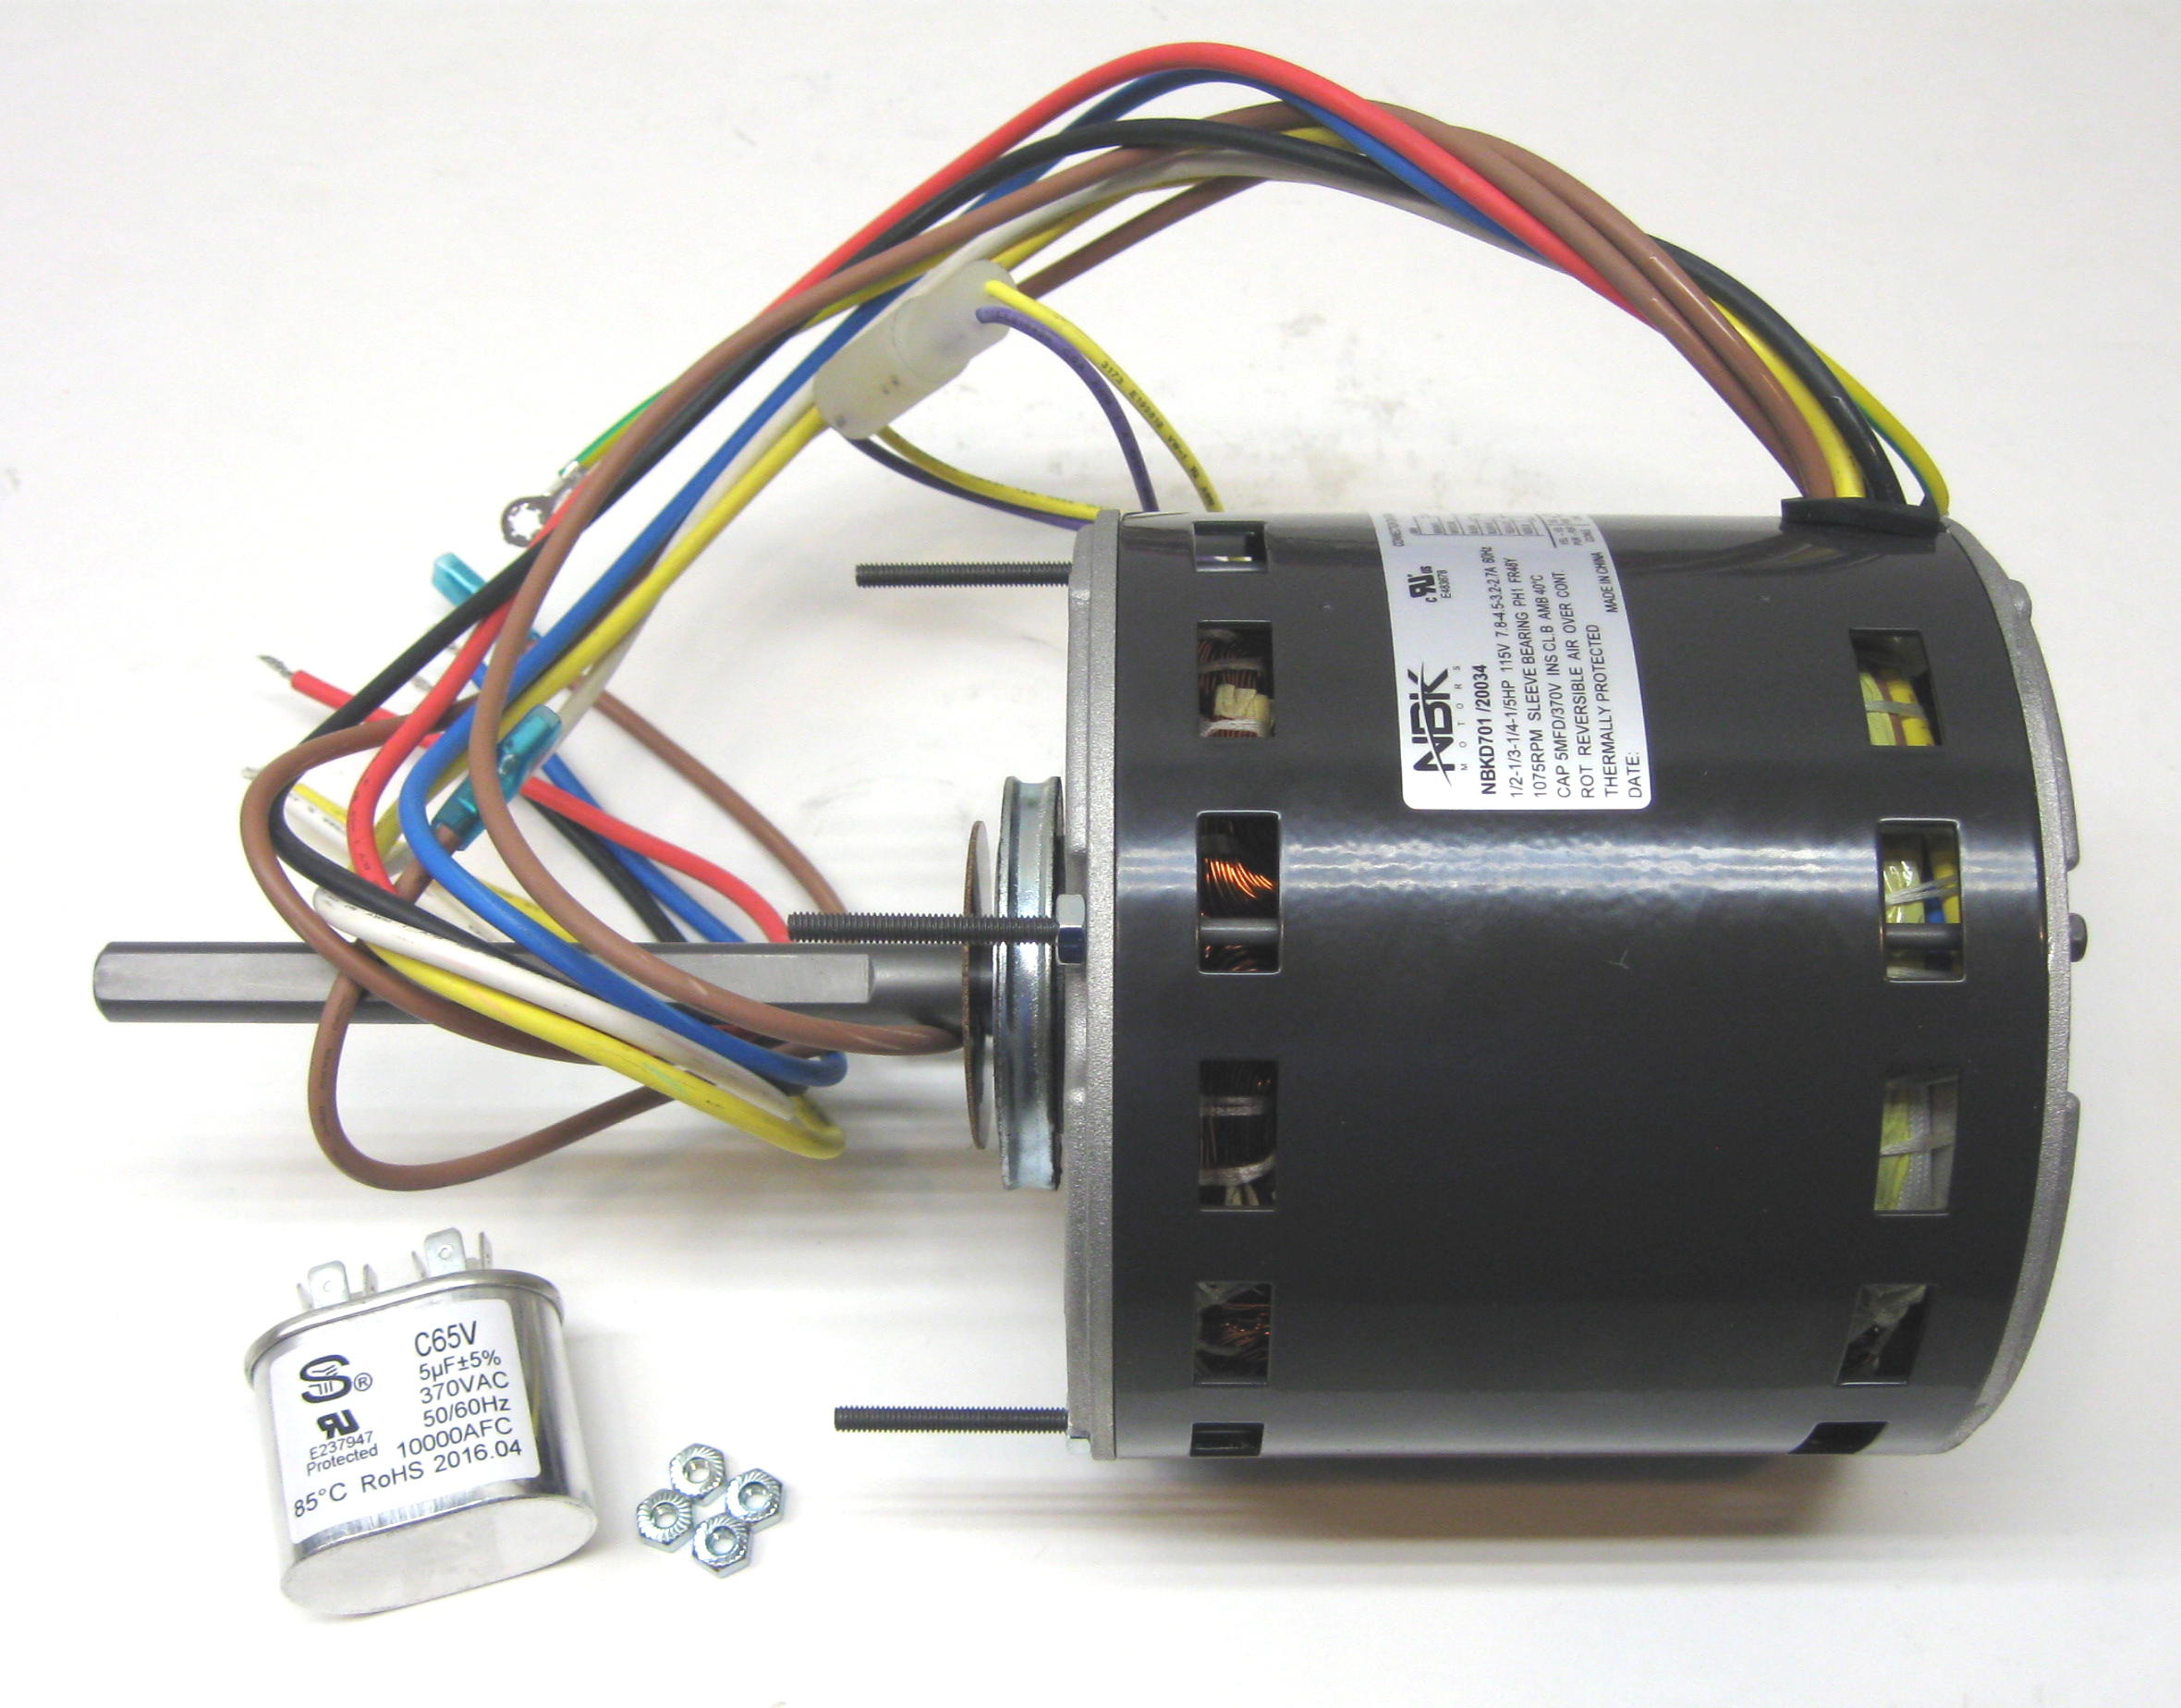 furnace air handler hvac direct drive blower motor 1 2 hp 1075 rpm 115 volts 4 speed capacitor included HVAC Blower Fuse